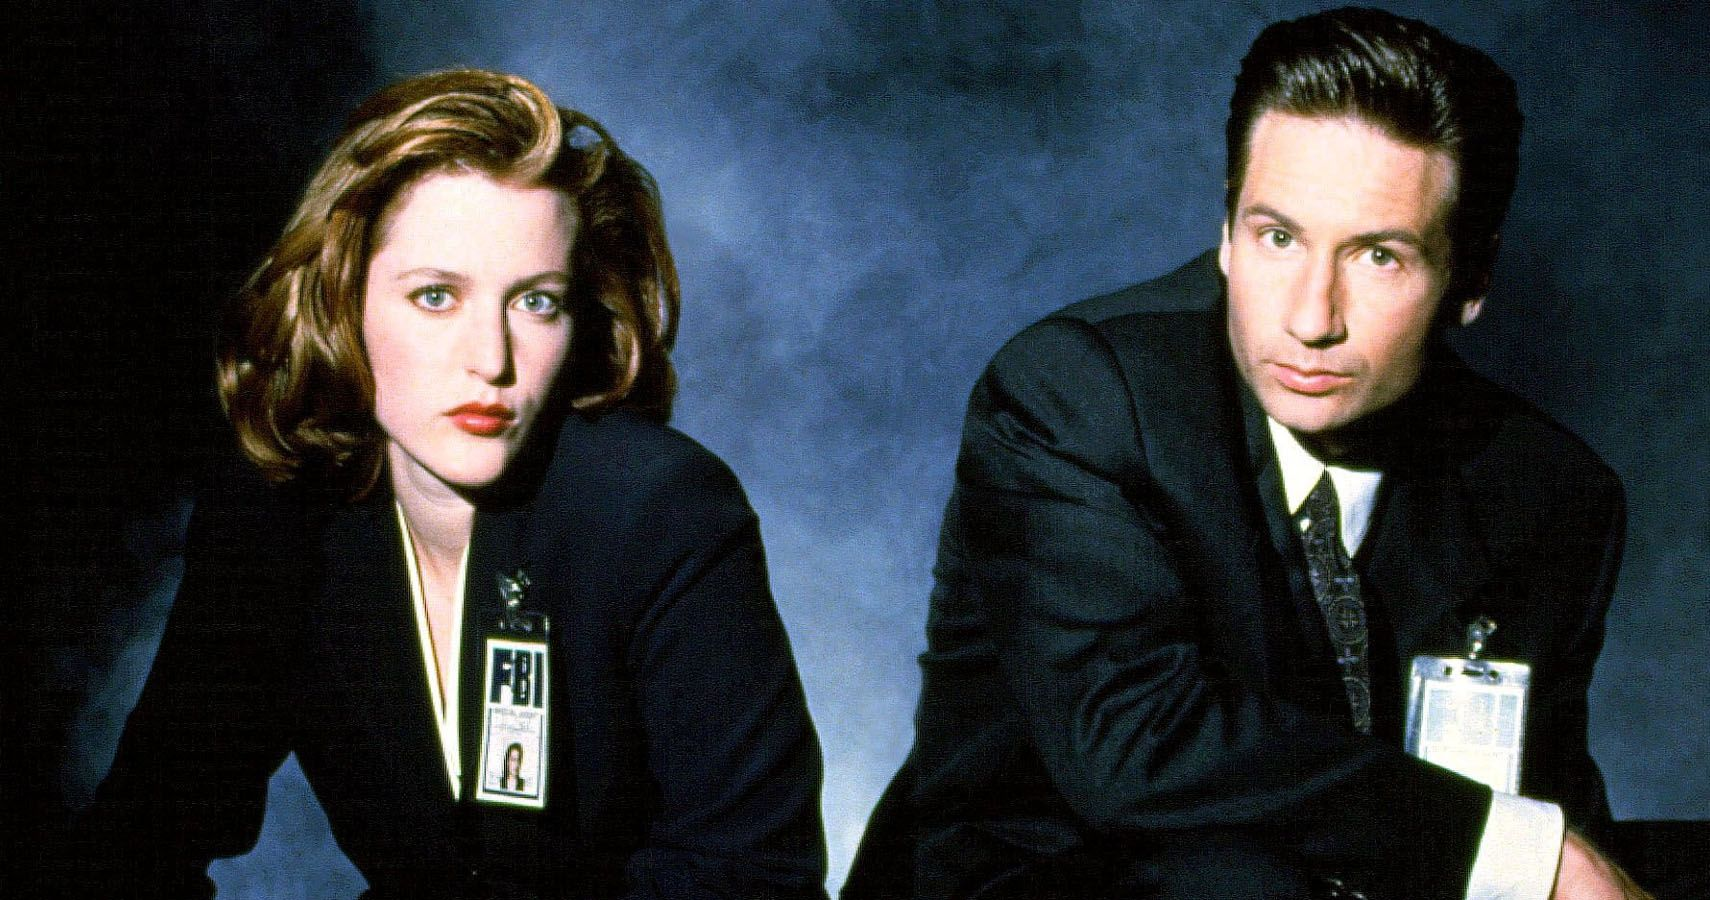 X-Files: 10 Hidden Details About The Main Characters Everyone Missed